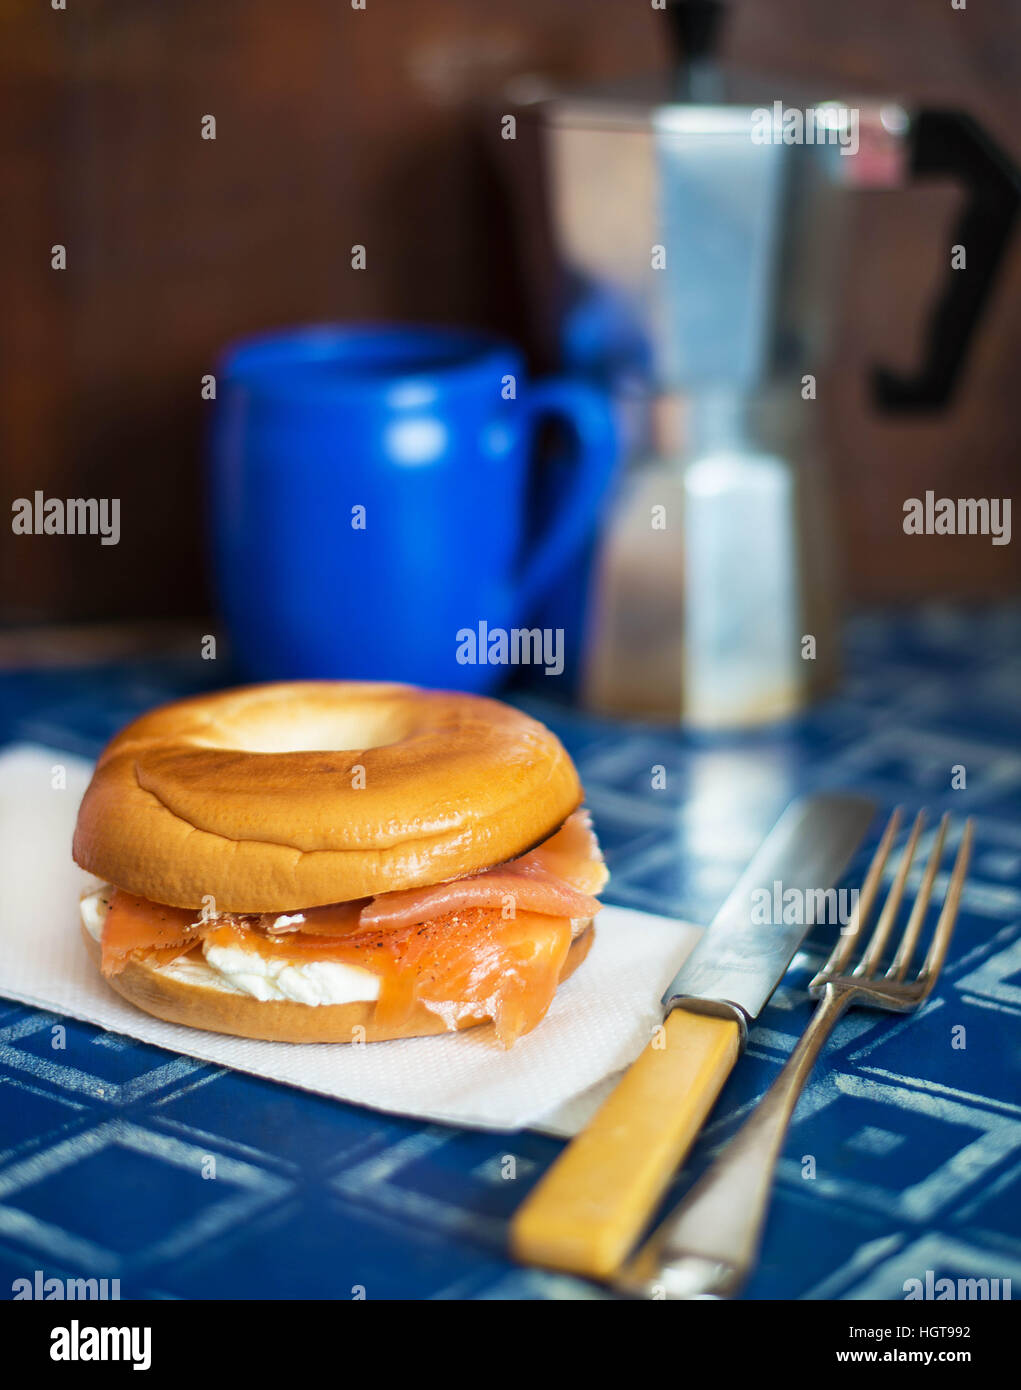 Smoked Salmon Bagel - Stock Image